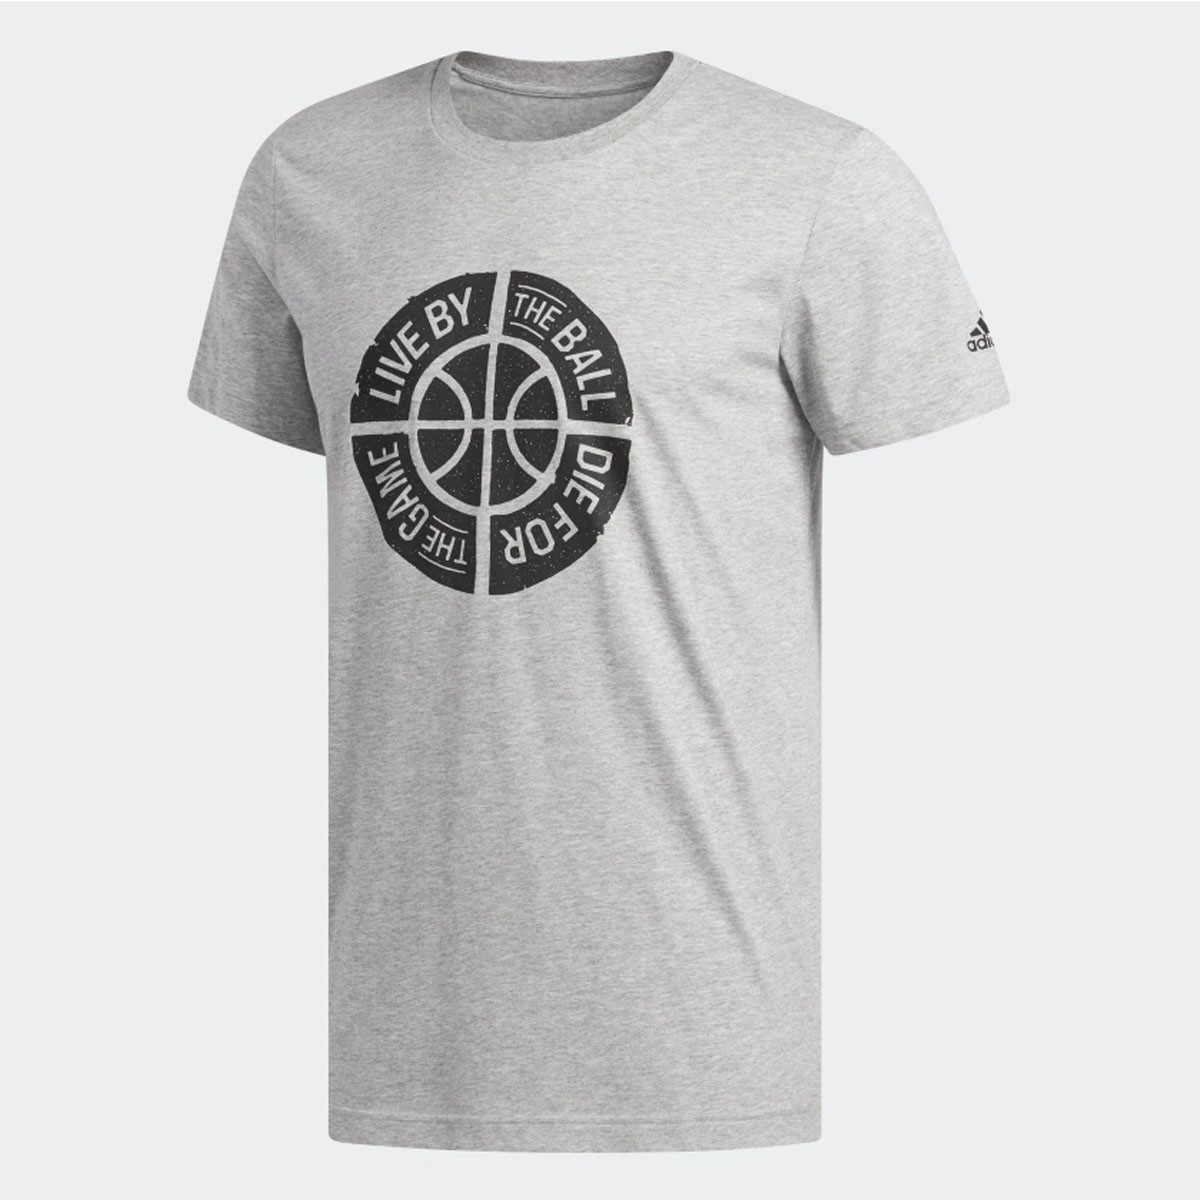 ADIDAS Graphic Tee 'Die for the game' DU6450